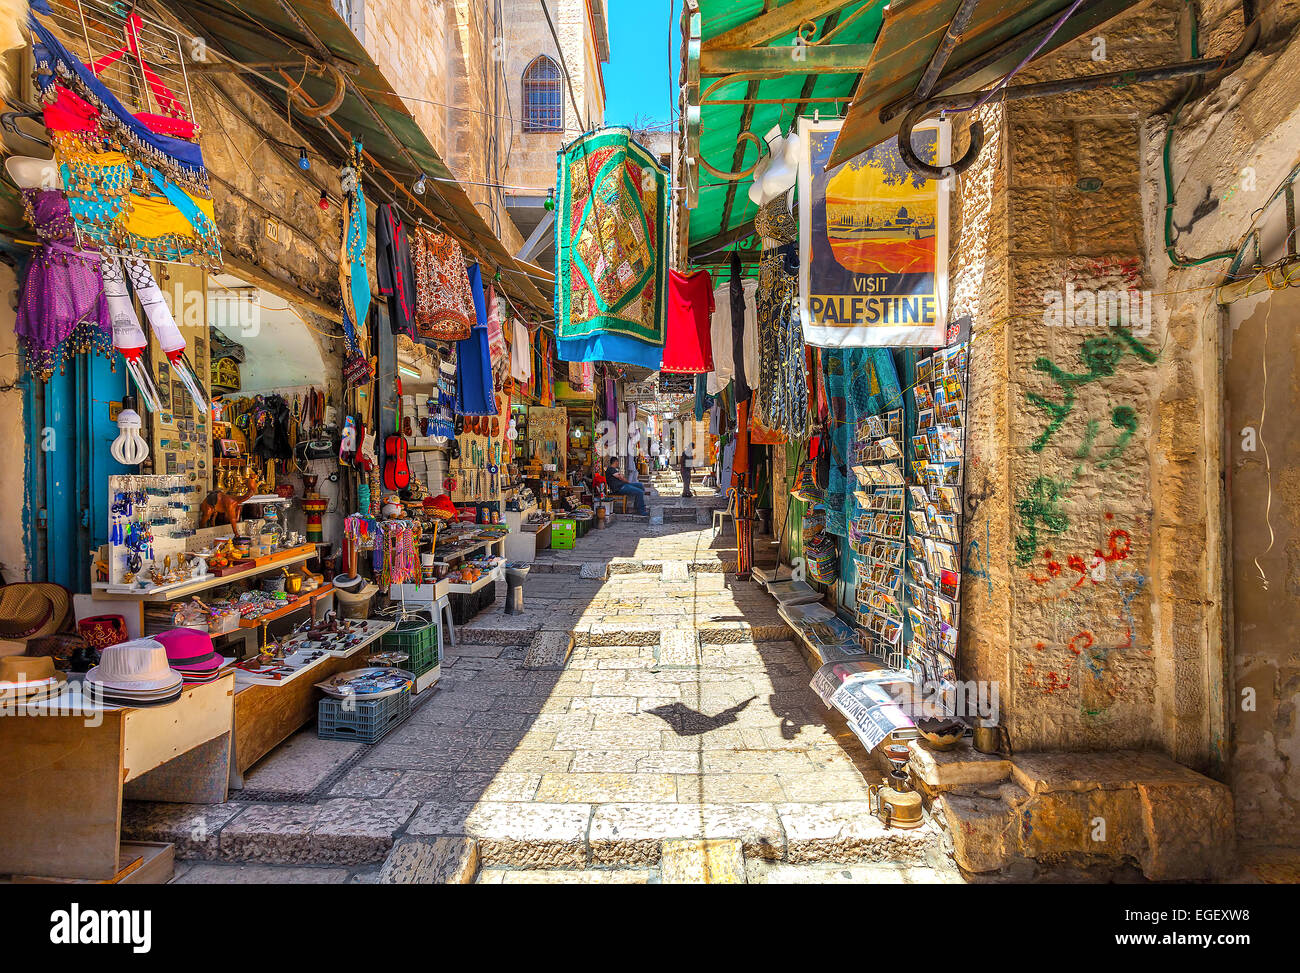 Narrow stone street among stalls with traditional souvenirs and goods at bazaar in Jerusalem. - Stock Image